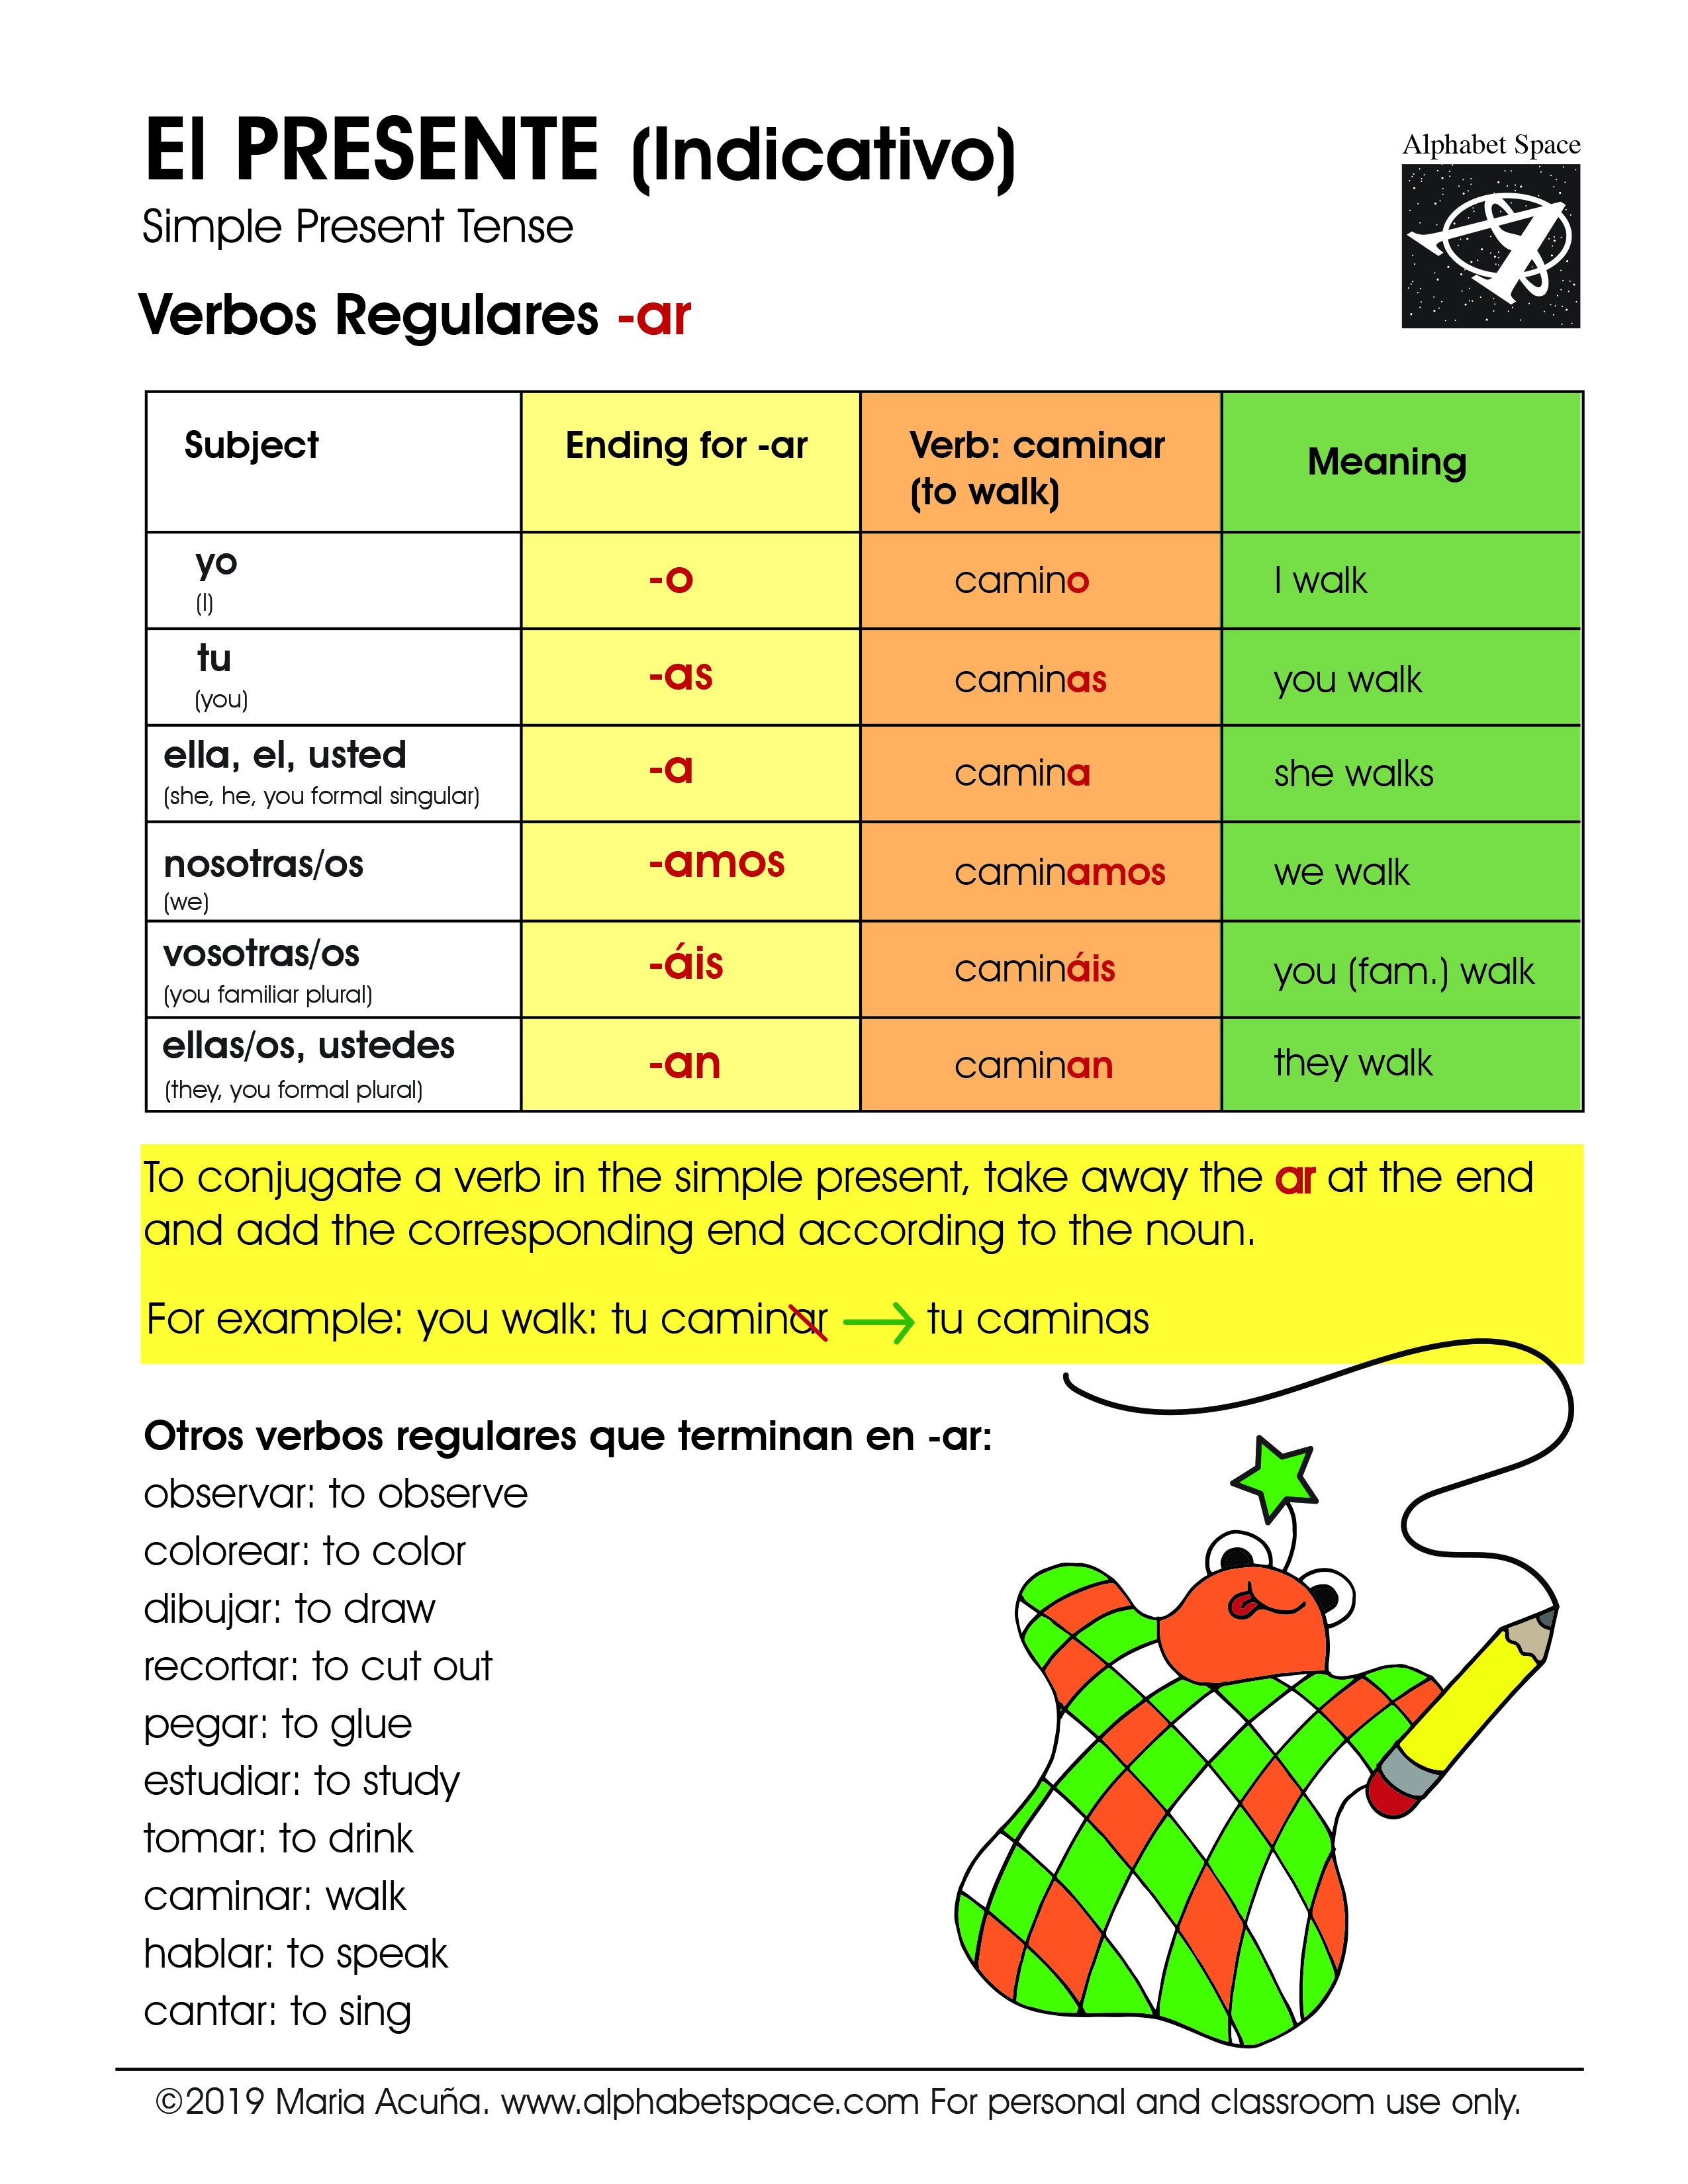 Present -ar reg Graphic. ©2019 Maria Acuña. For personal or classroom use only..jpg